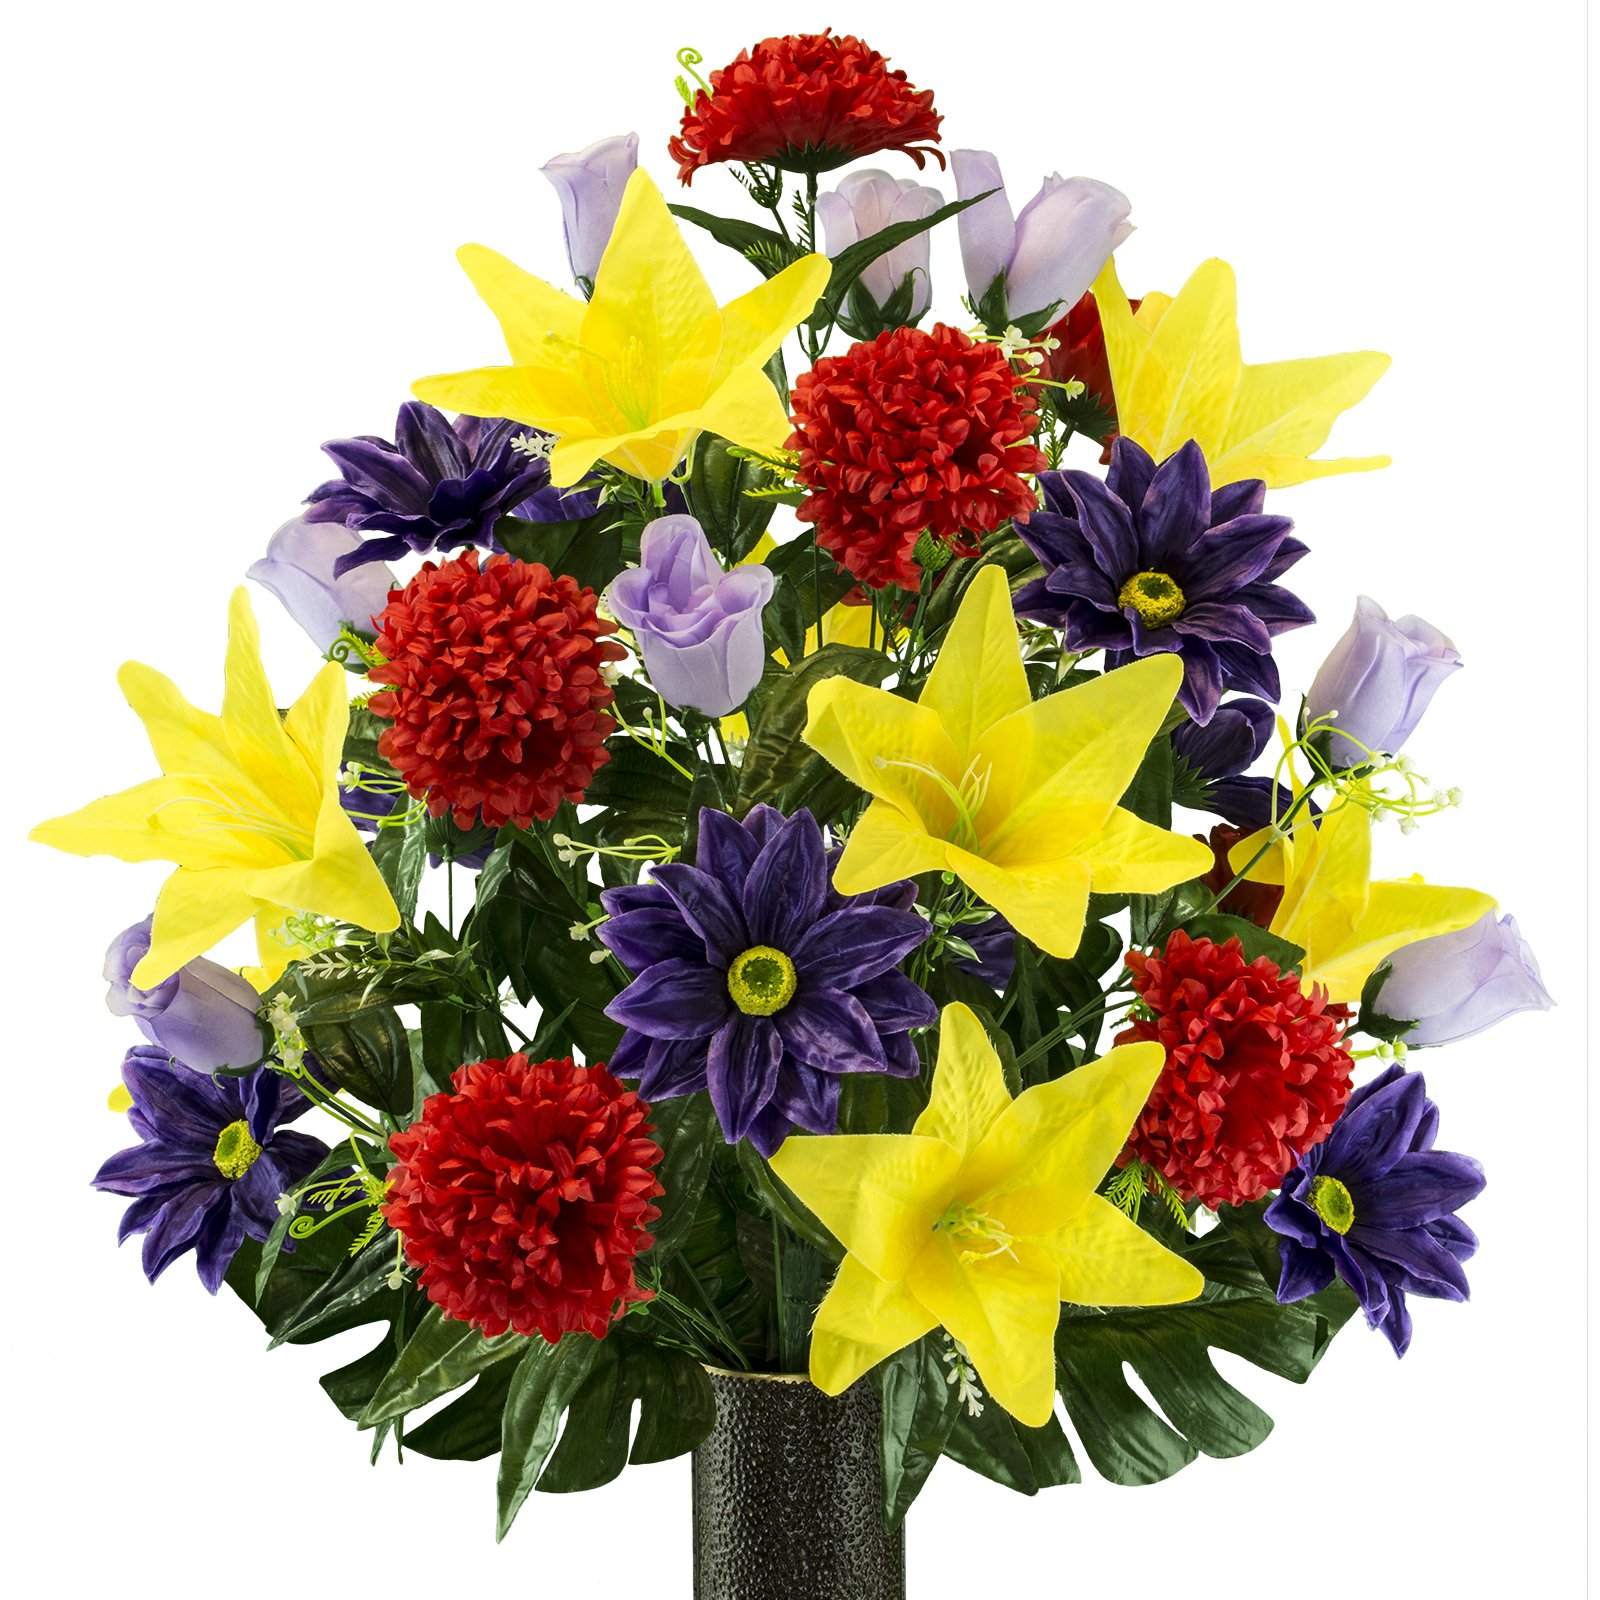 Purple-Gerbera-and-Yellow-Lily-Mix-Artificial-Bouquet-featuring-the-Stay-In-The-Vase-Designc-Flower-Holder-LG2173